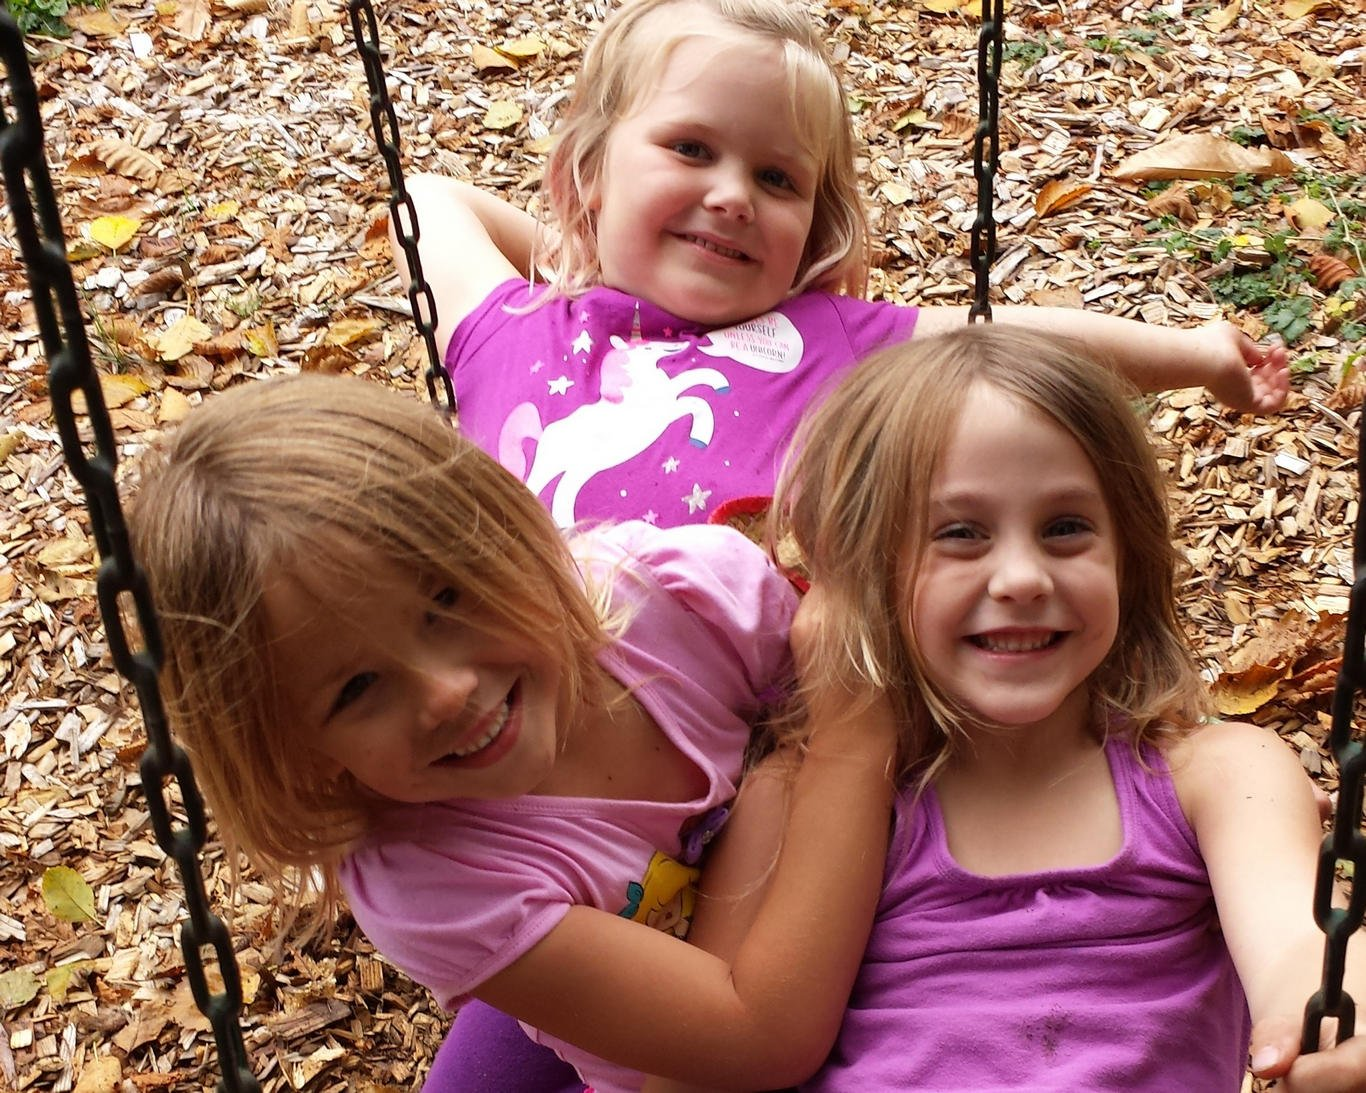 Preschool girls share a swing and a few laughs